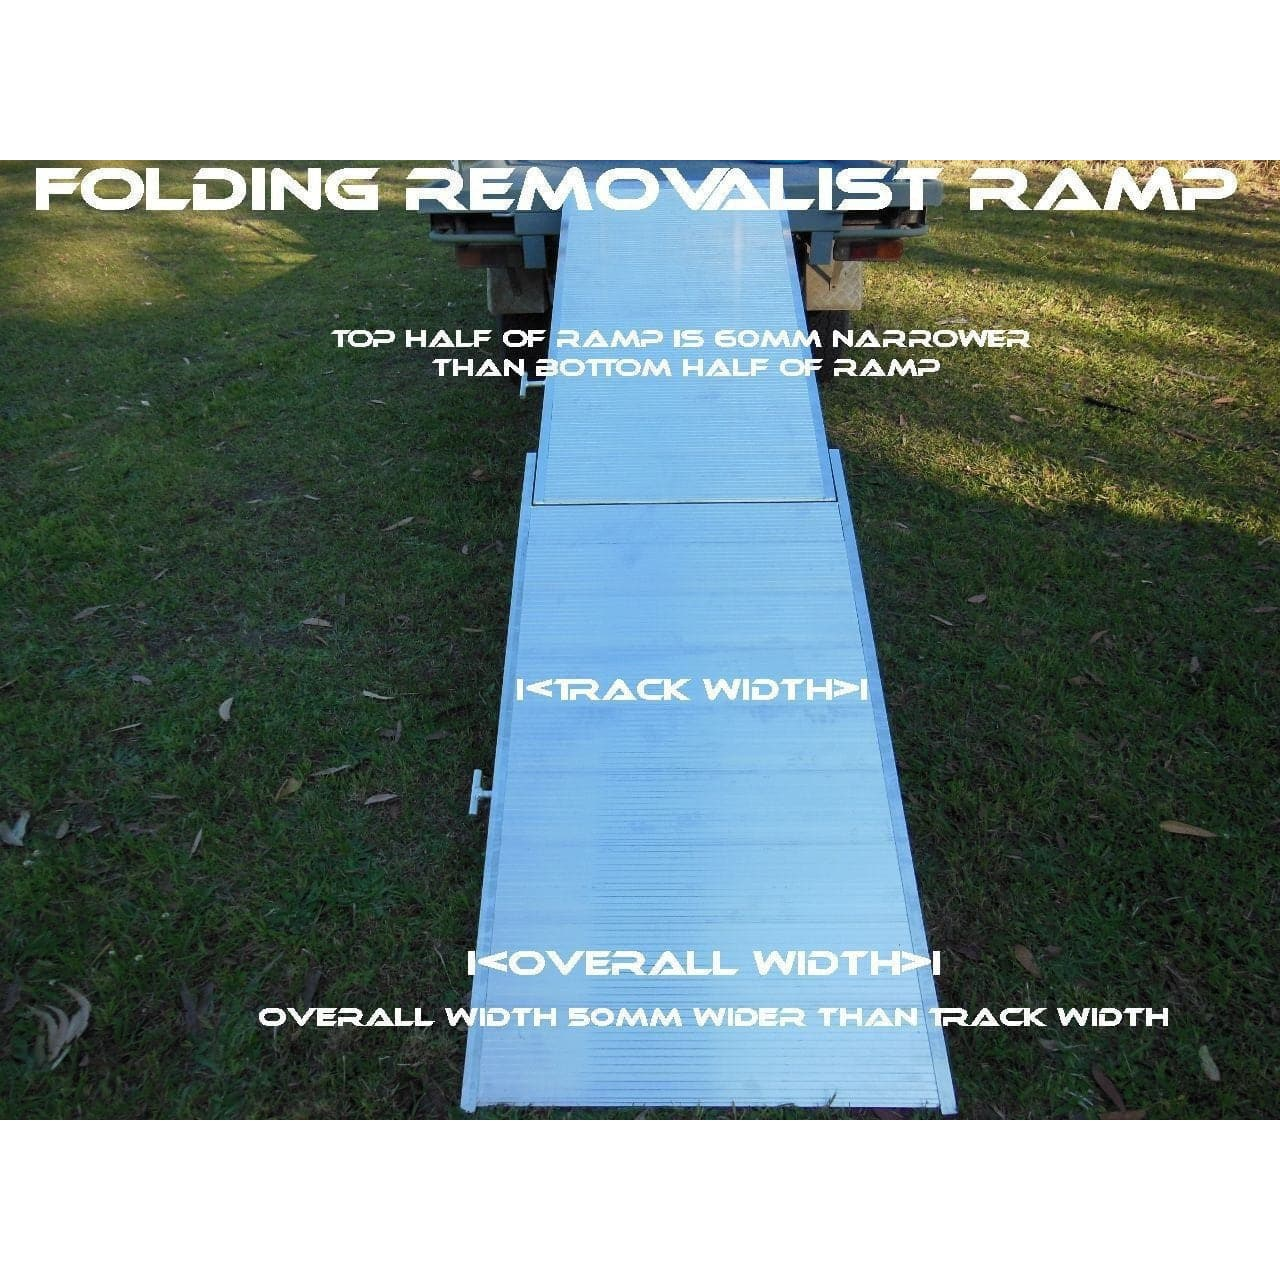 Whipps removalist ramp sizes